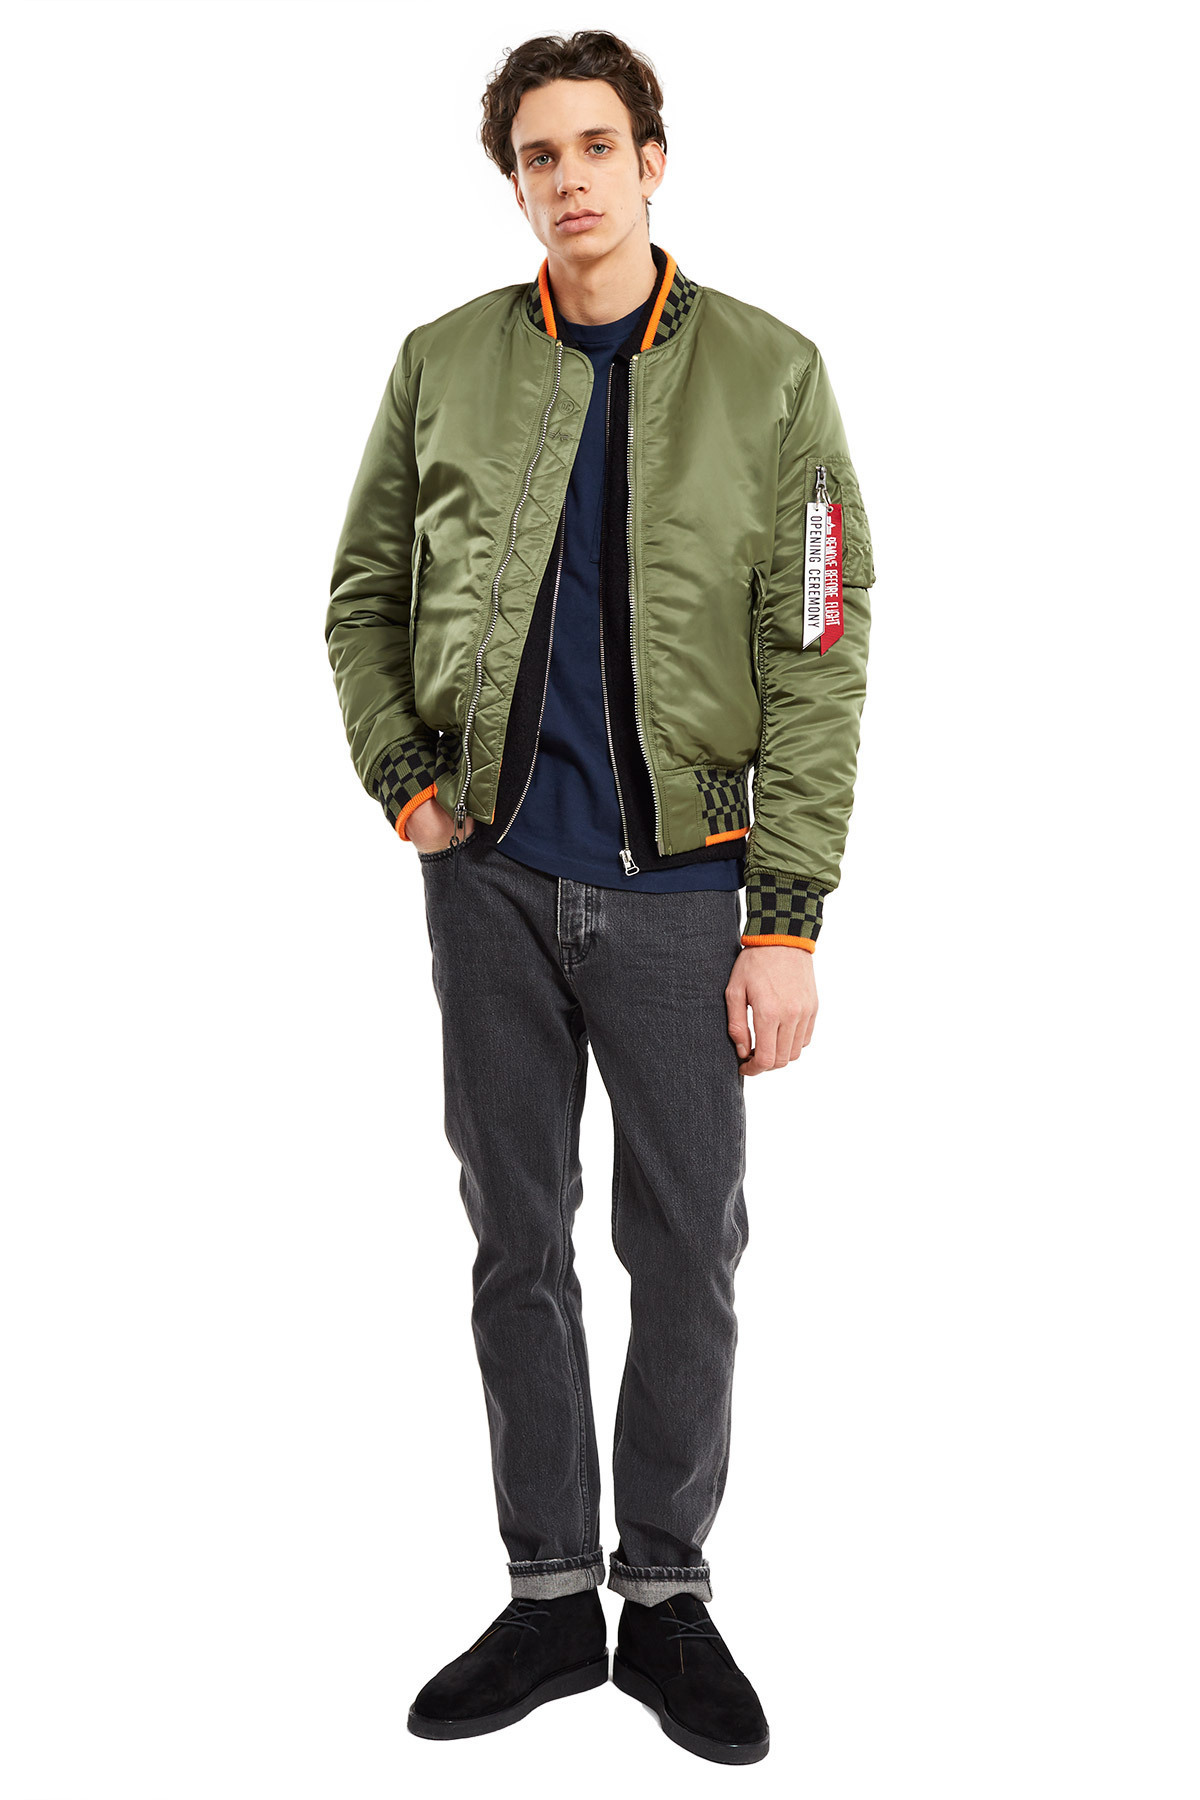 大特価★限定 ALPHA INDUSTRIES x Opening Ceremony MA-1 Jacket